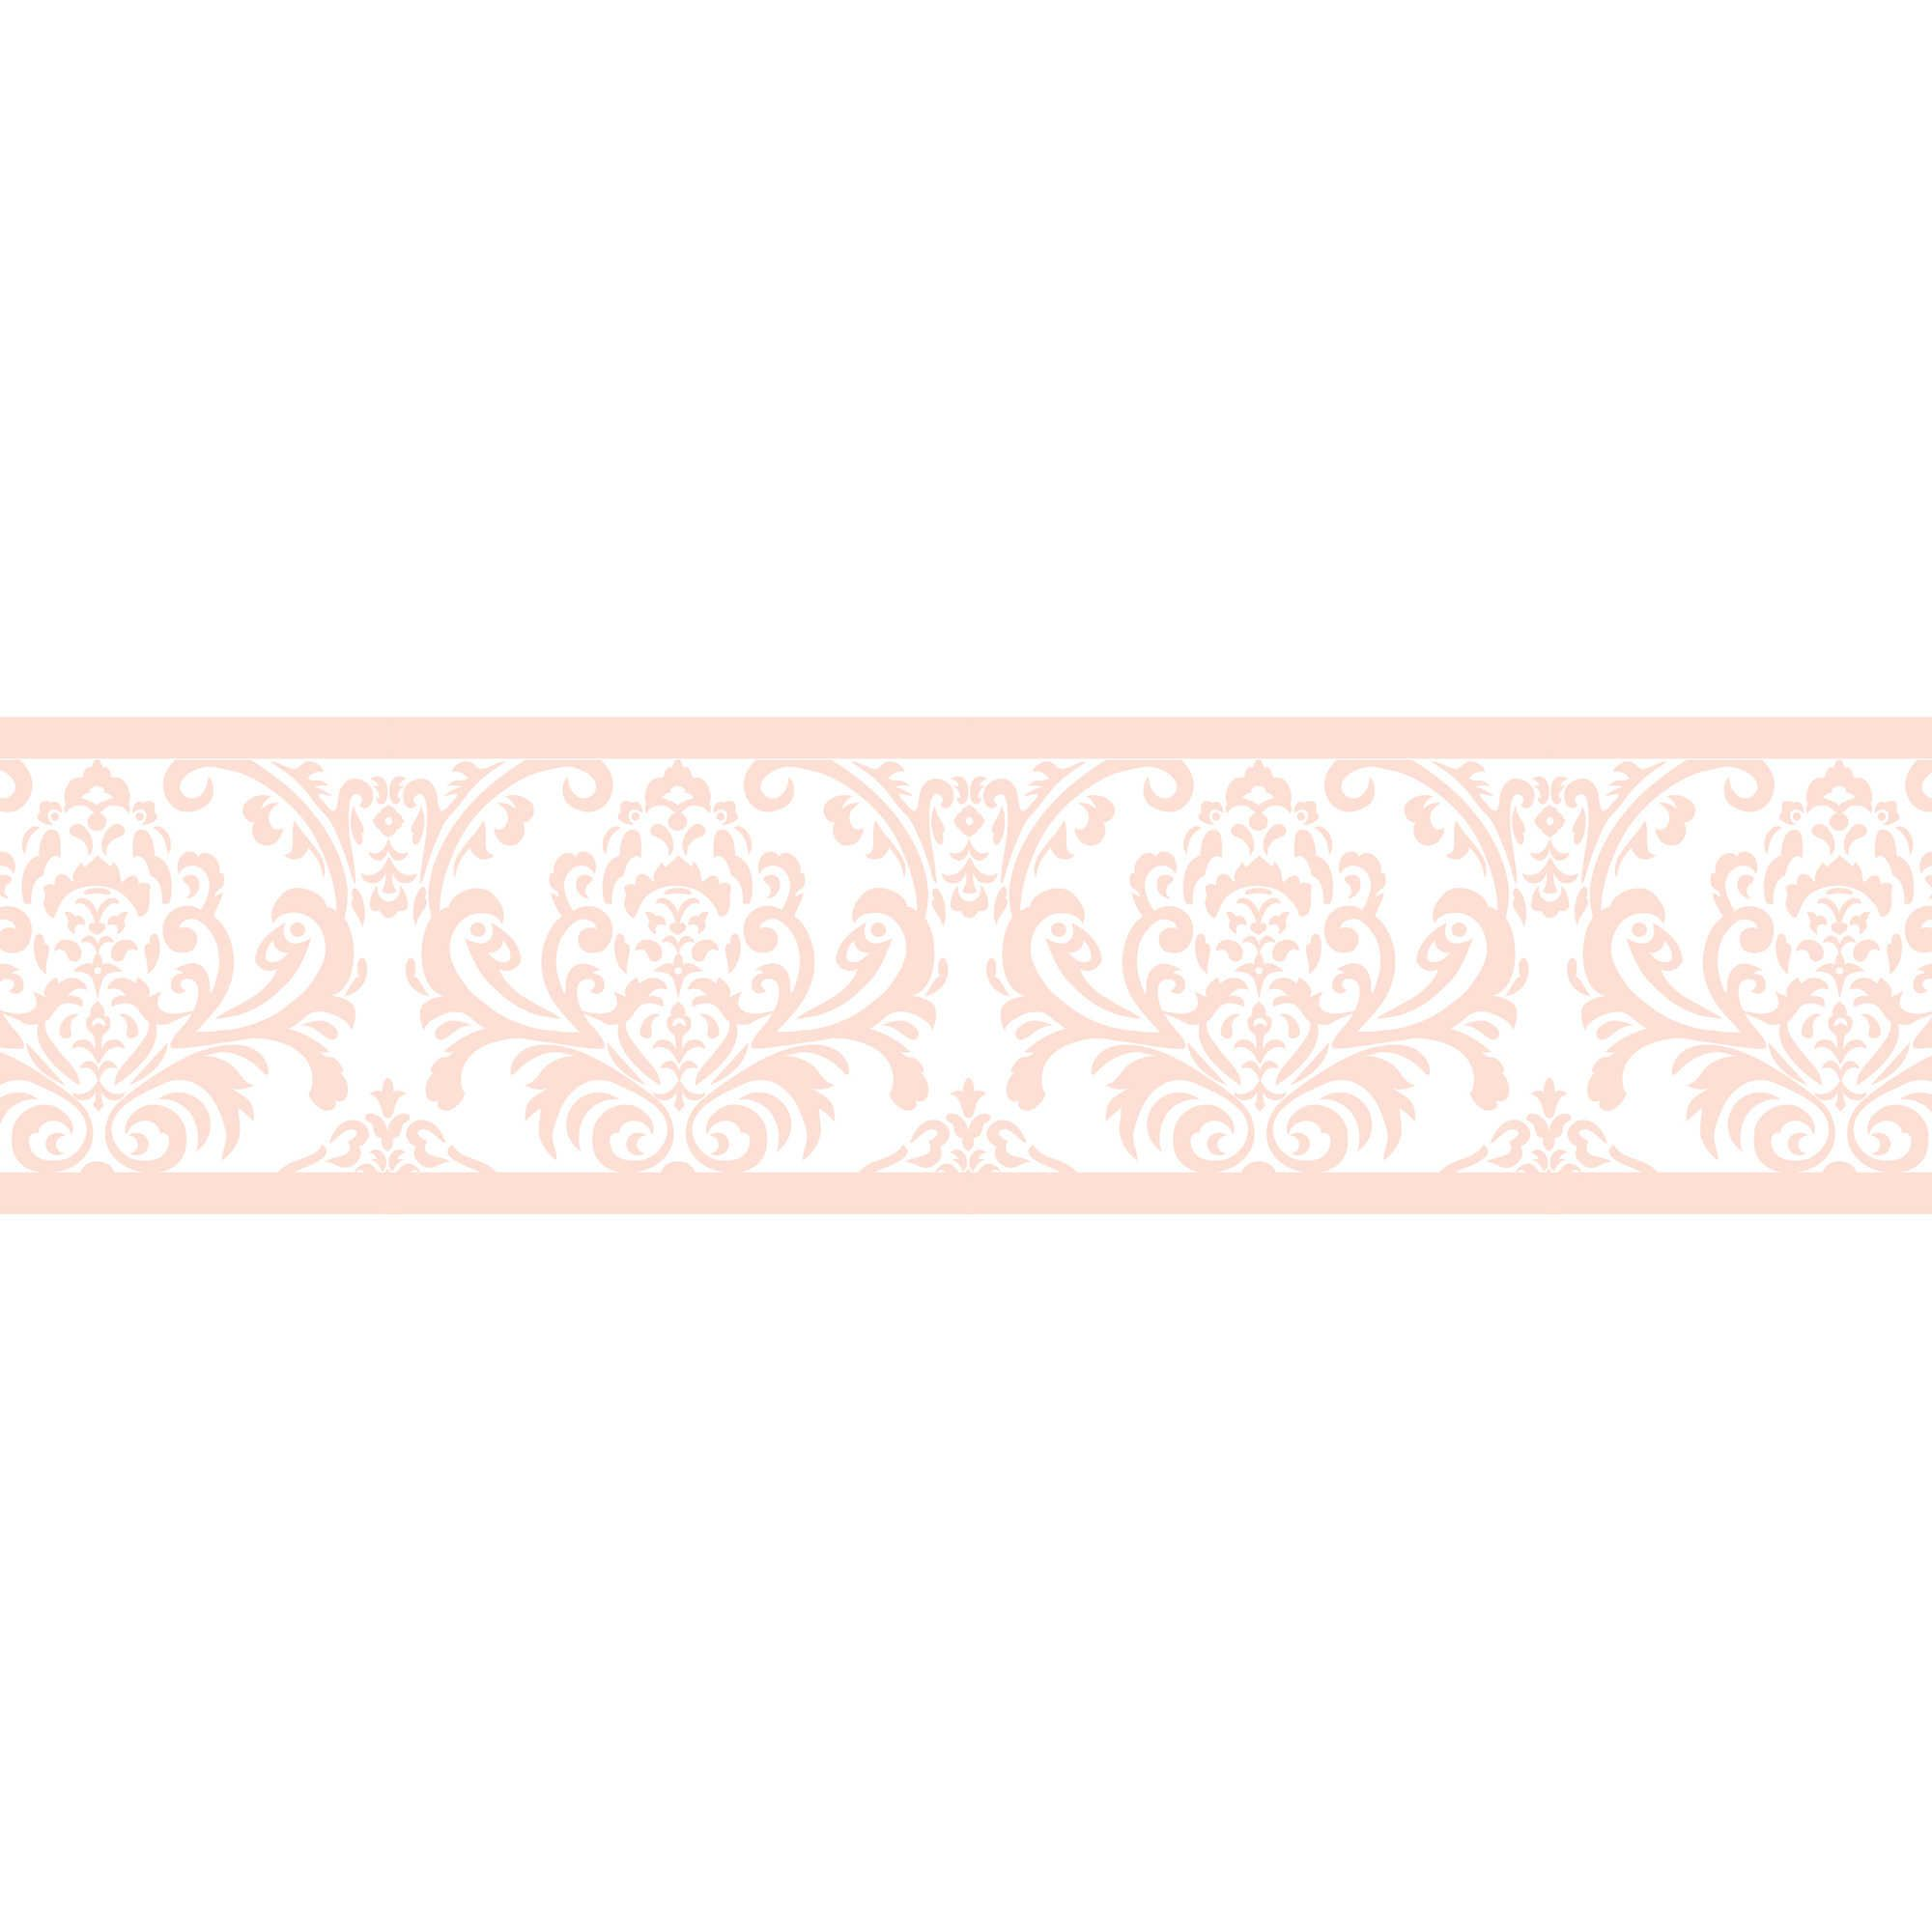 Sweet Jojo Designs Amelia Wallpaper Border in Pink/White